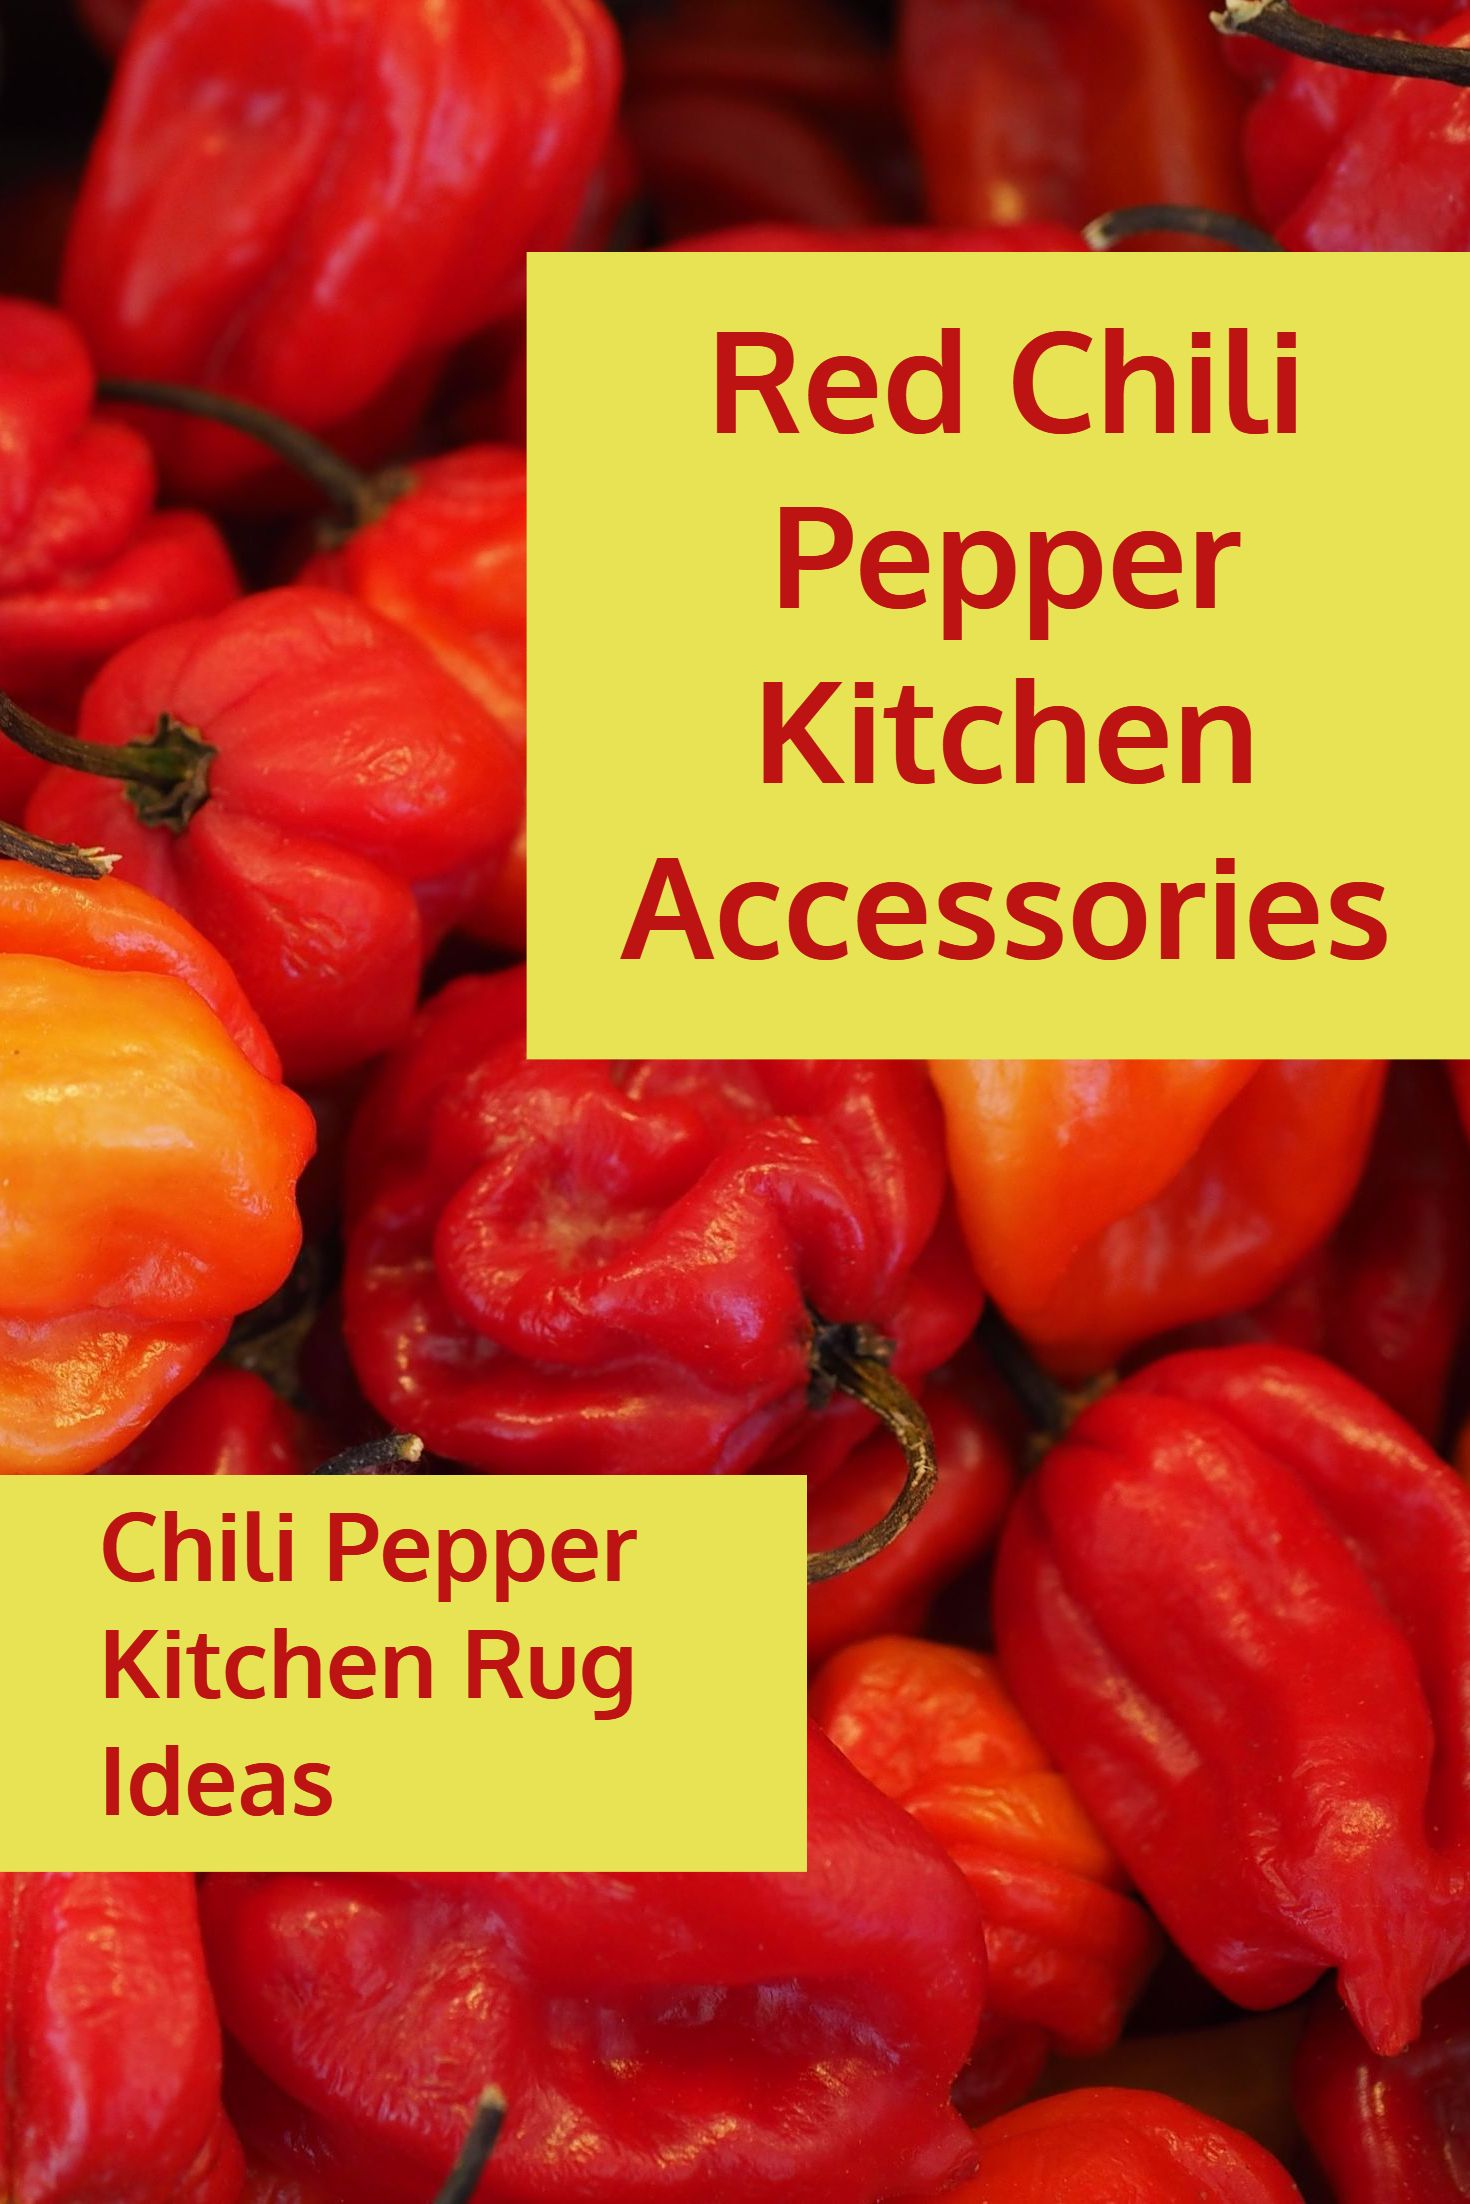 Red Chili Pepper Kitchen Accessories Rug Ideas